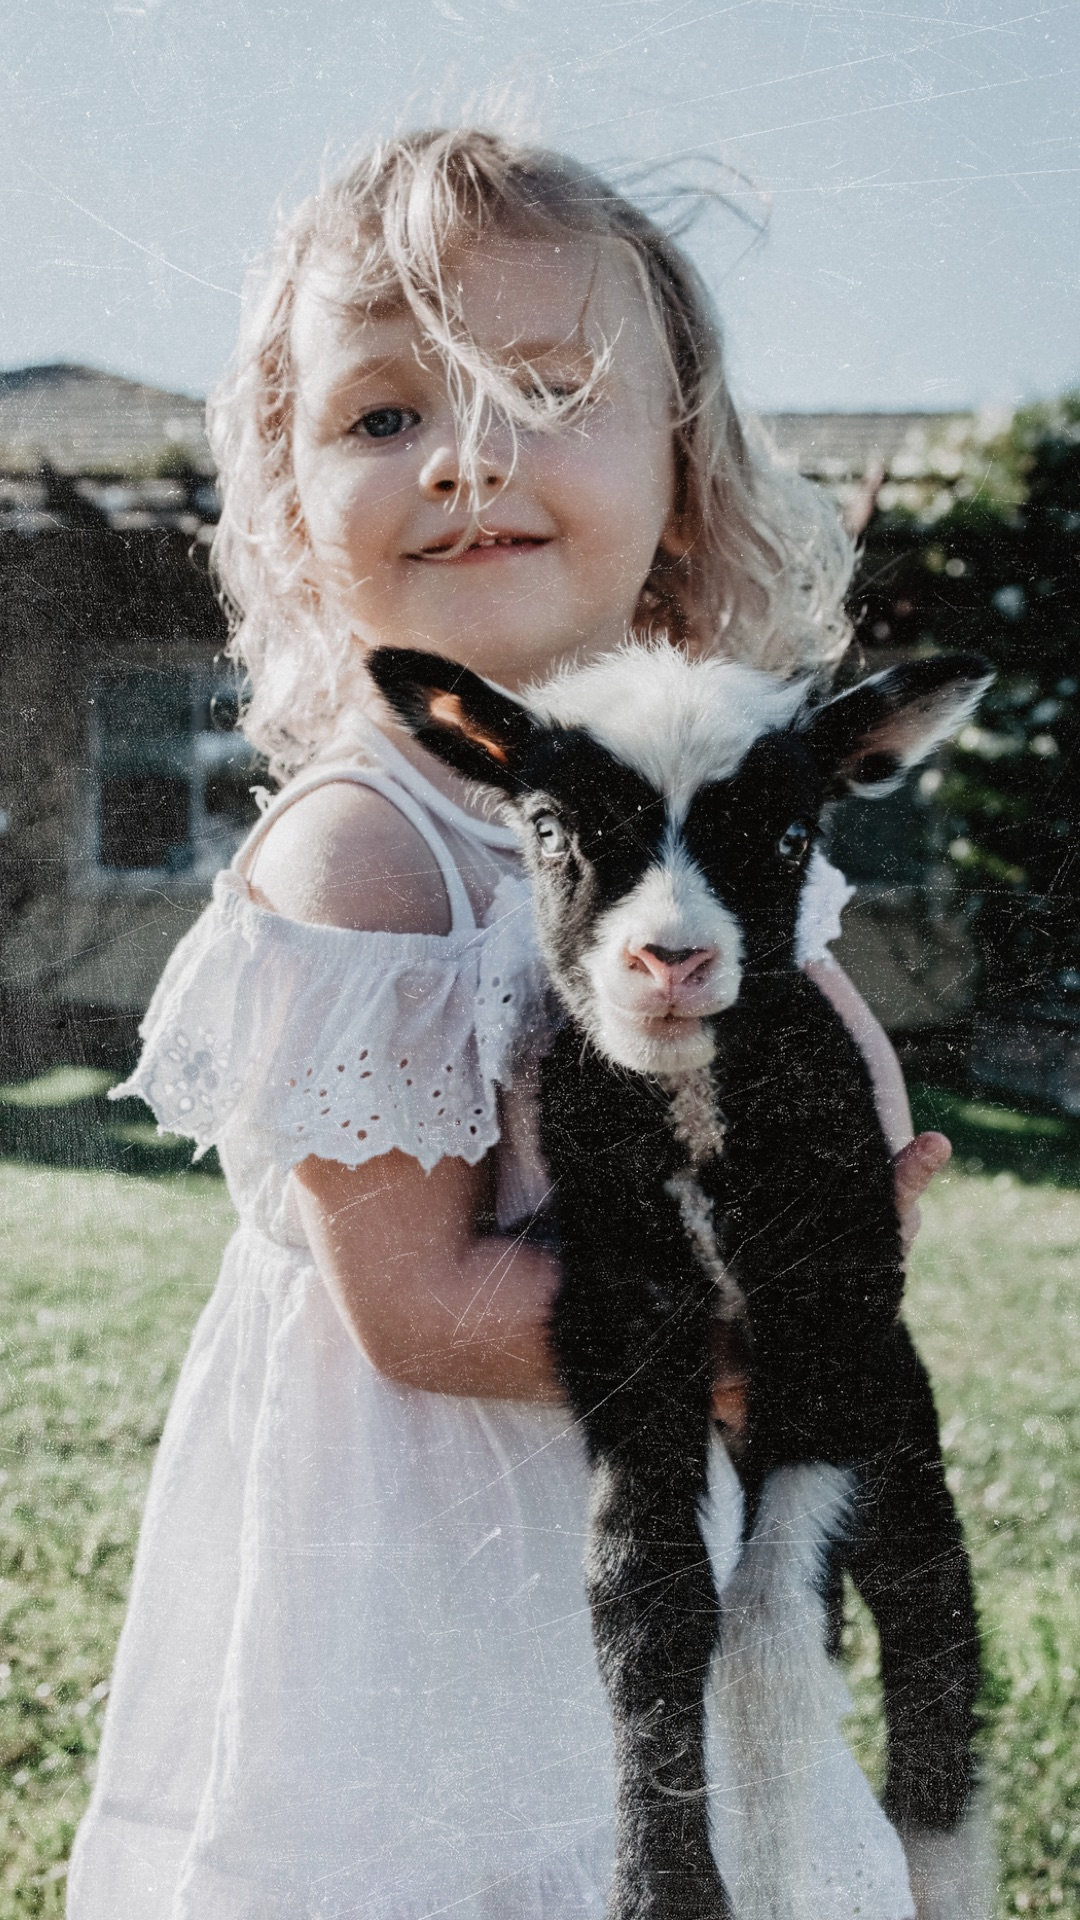 Child Portrait with baby lamb in San Diego